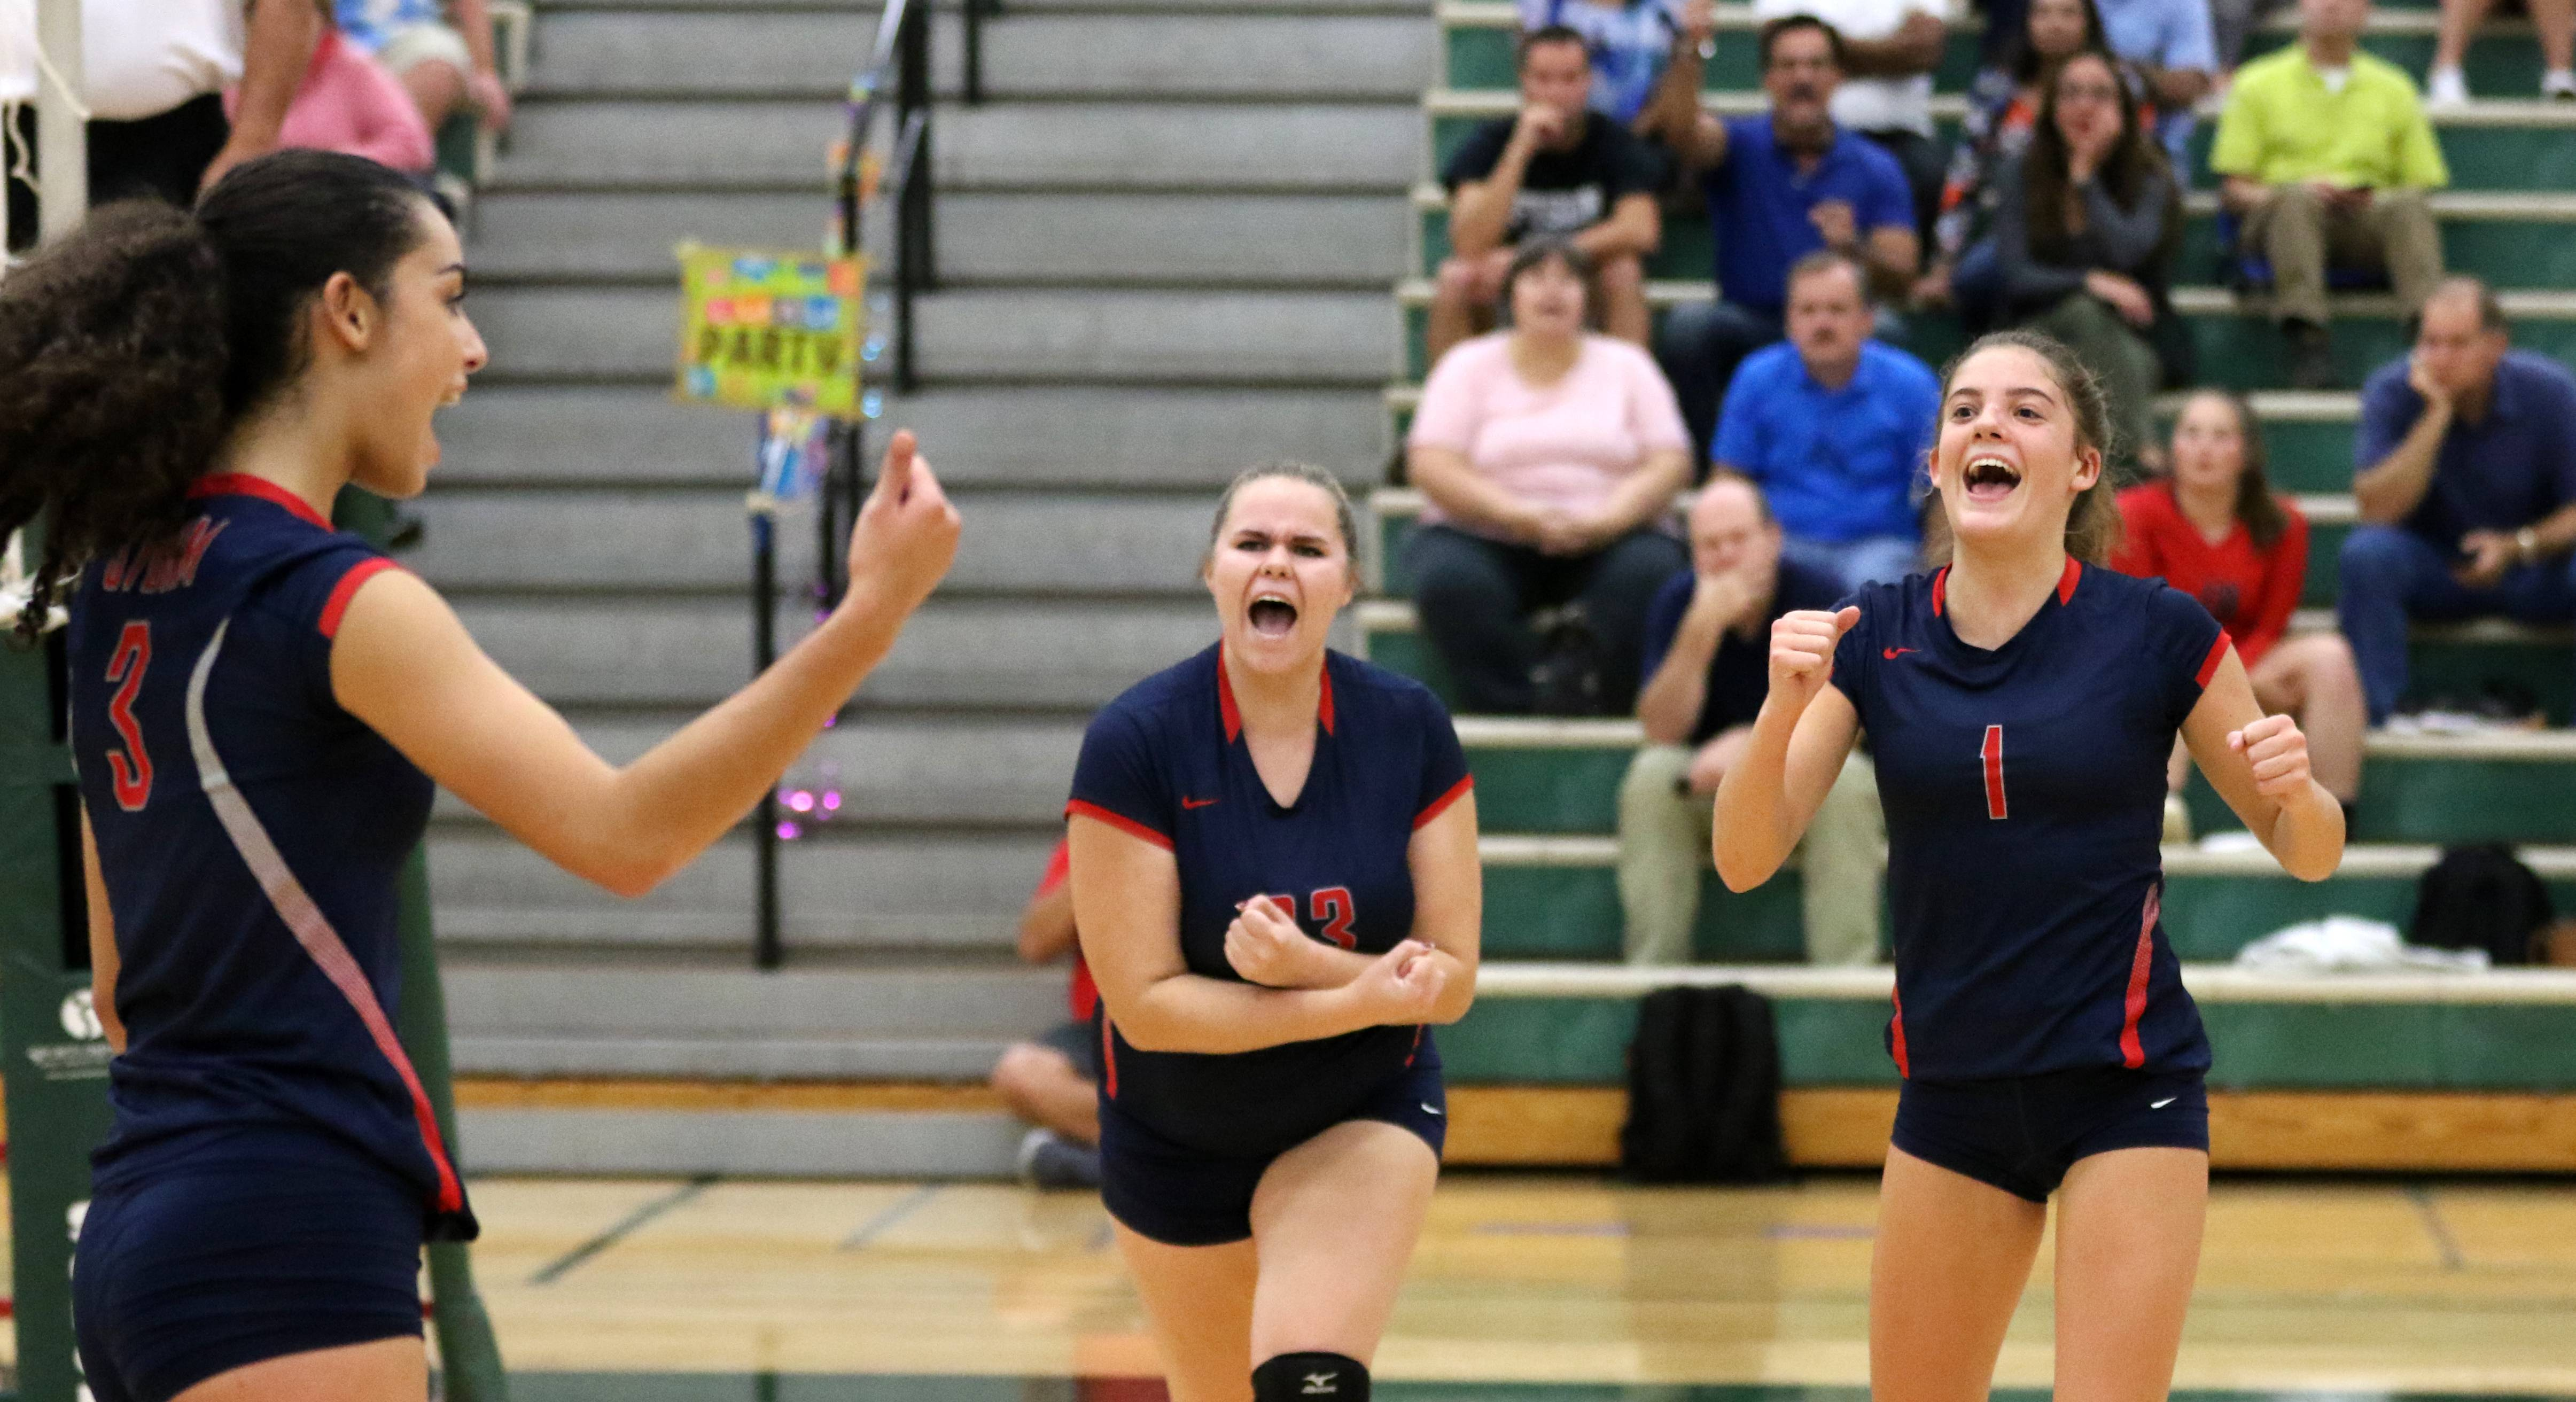 South Elgin players, from left, Angeline Negron, Kylee Hunter, and Kendall Richardson celebrate a point during varsity girls volleyball at Bartlett on Wednesday evening.